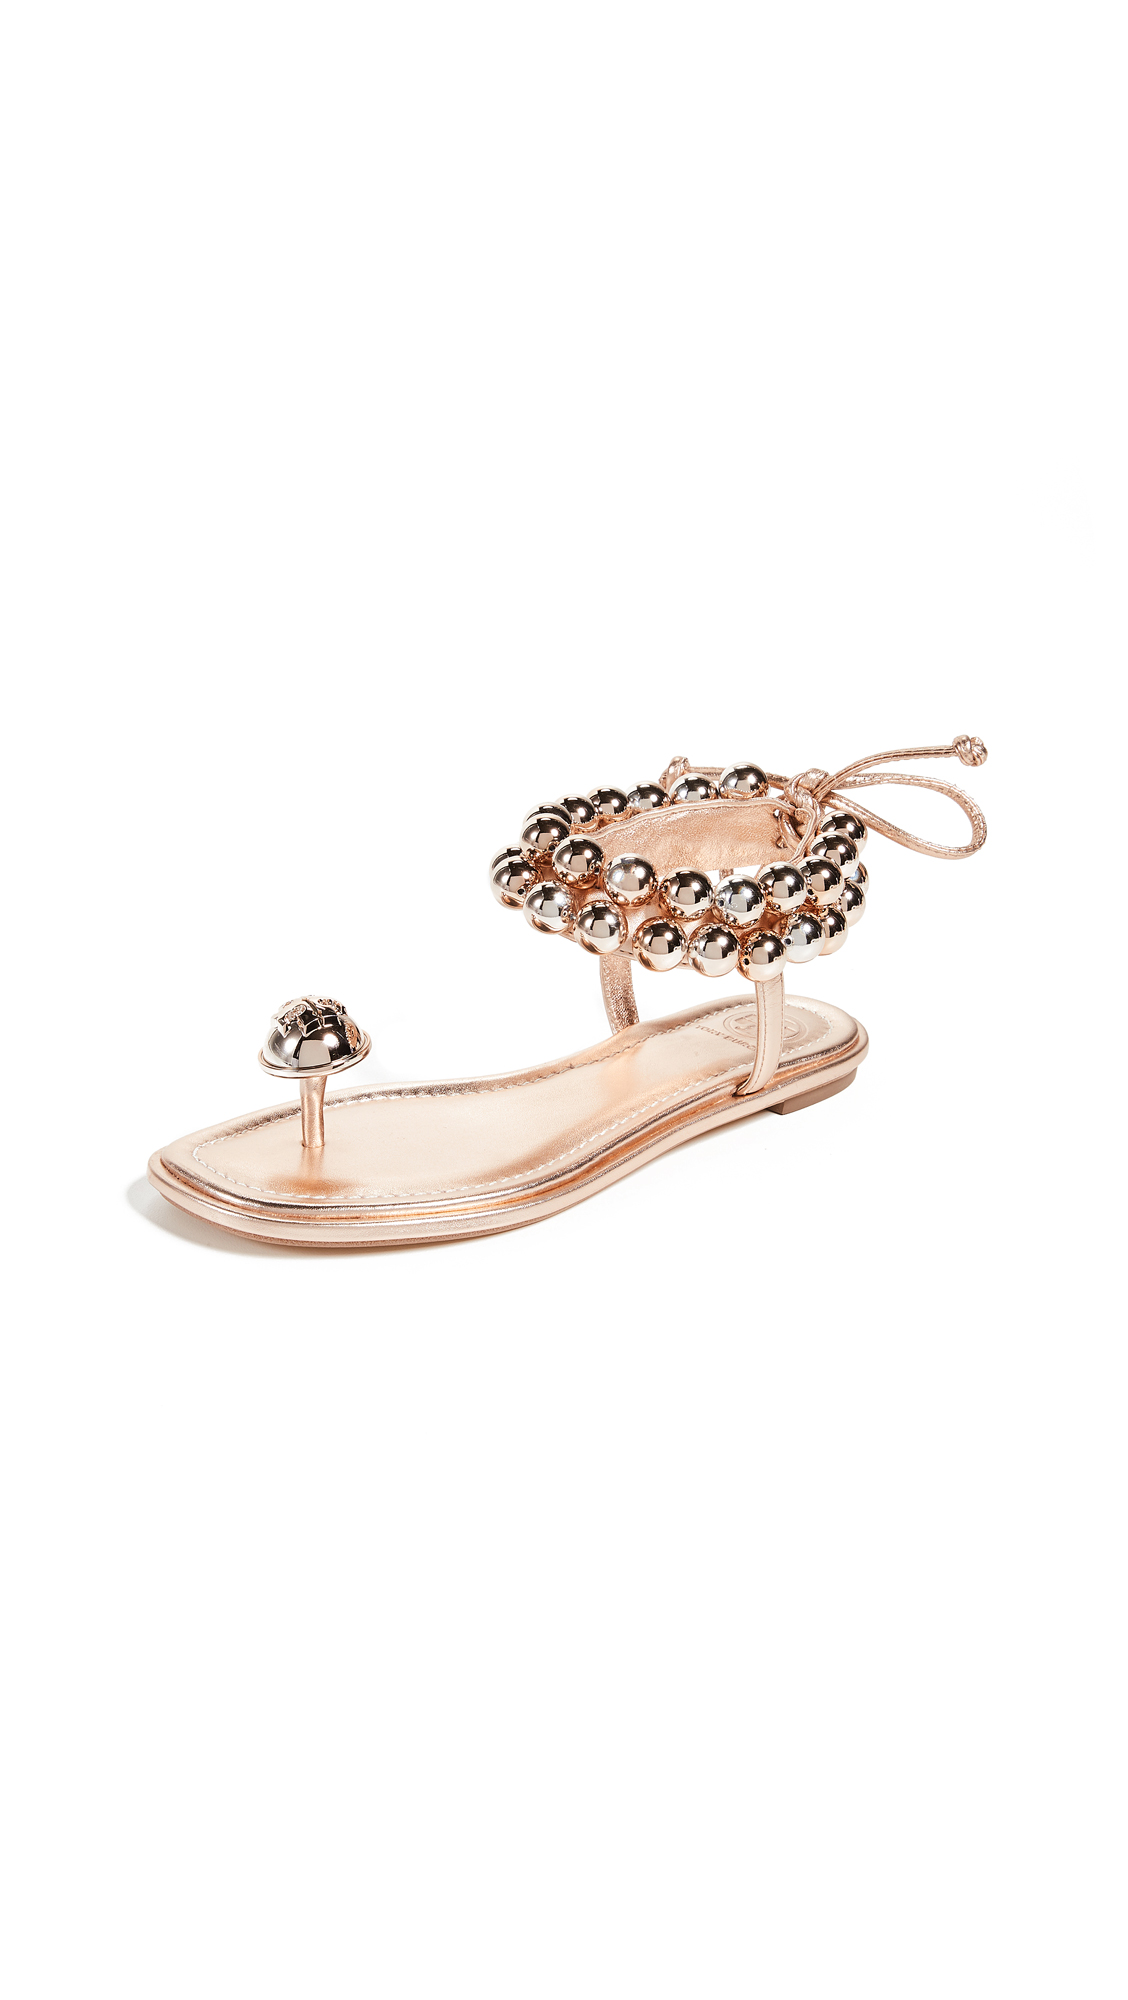 Tory Burch Melody Ankle Strap Sandals - Rose Gold